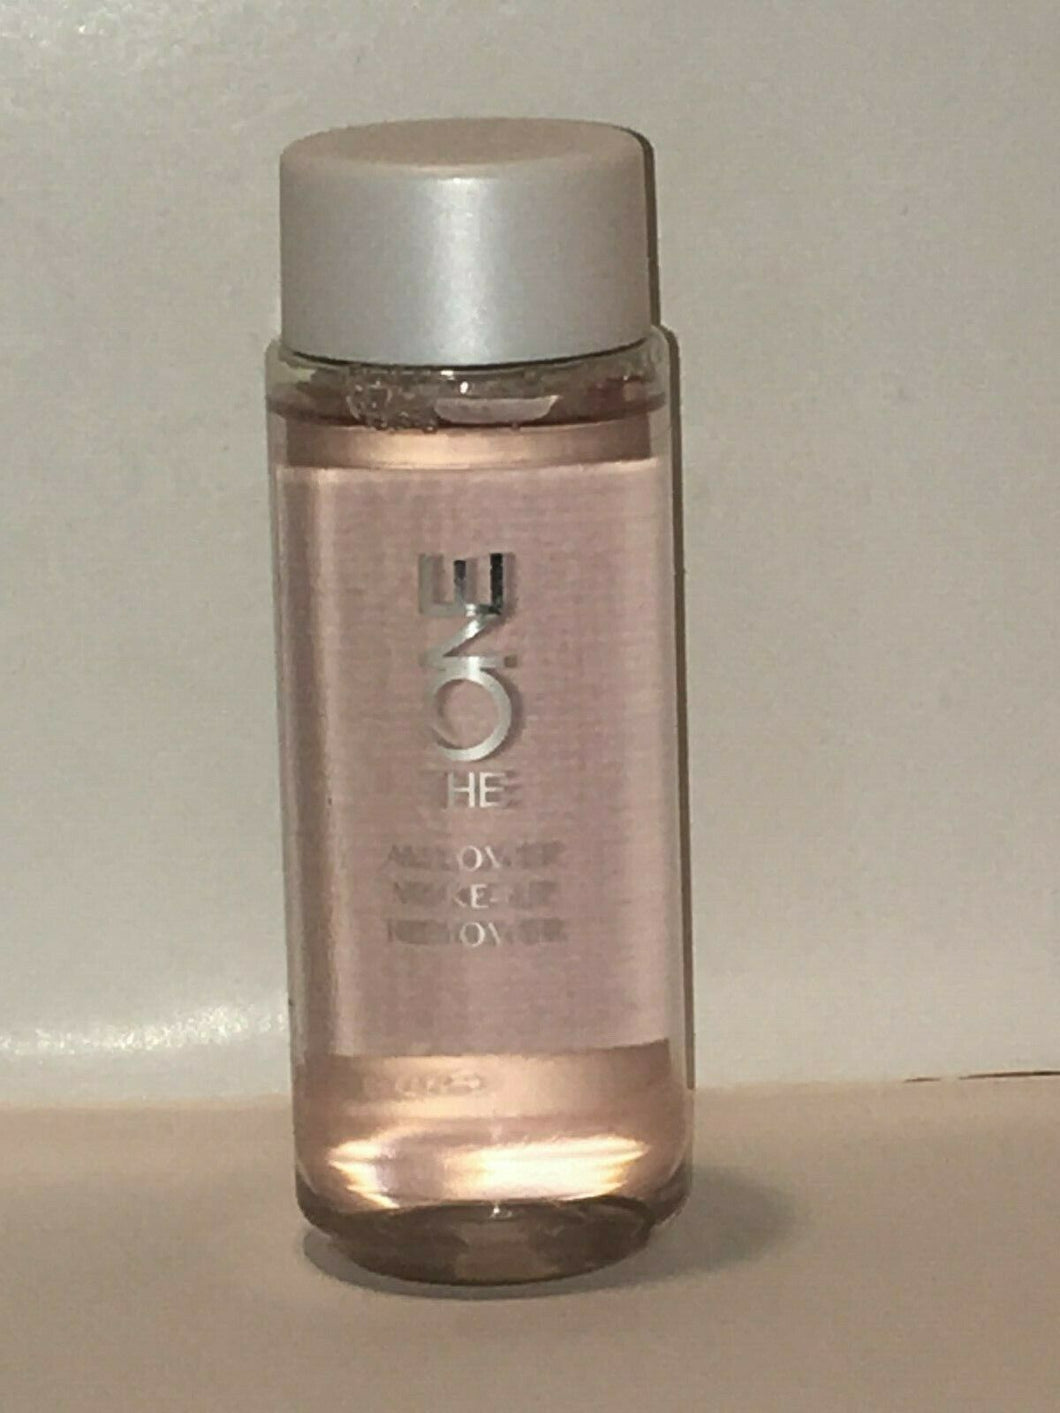 ORIFLAME SWEDEN THE ONE ALL-OVER MAKEUP REMOVER (FACE/NECK/EYES) 100 ml NEW!